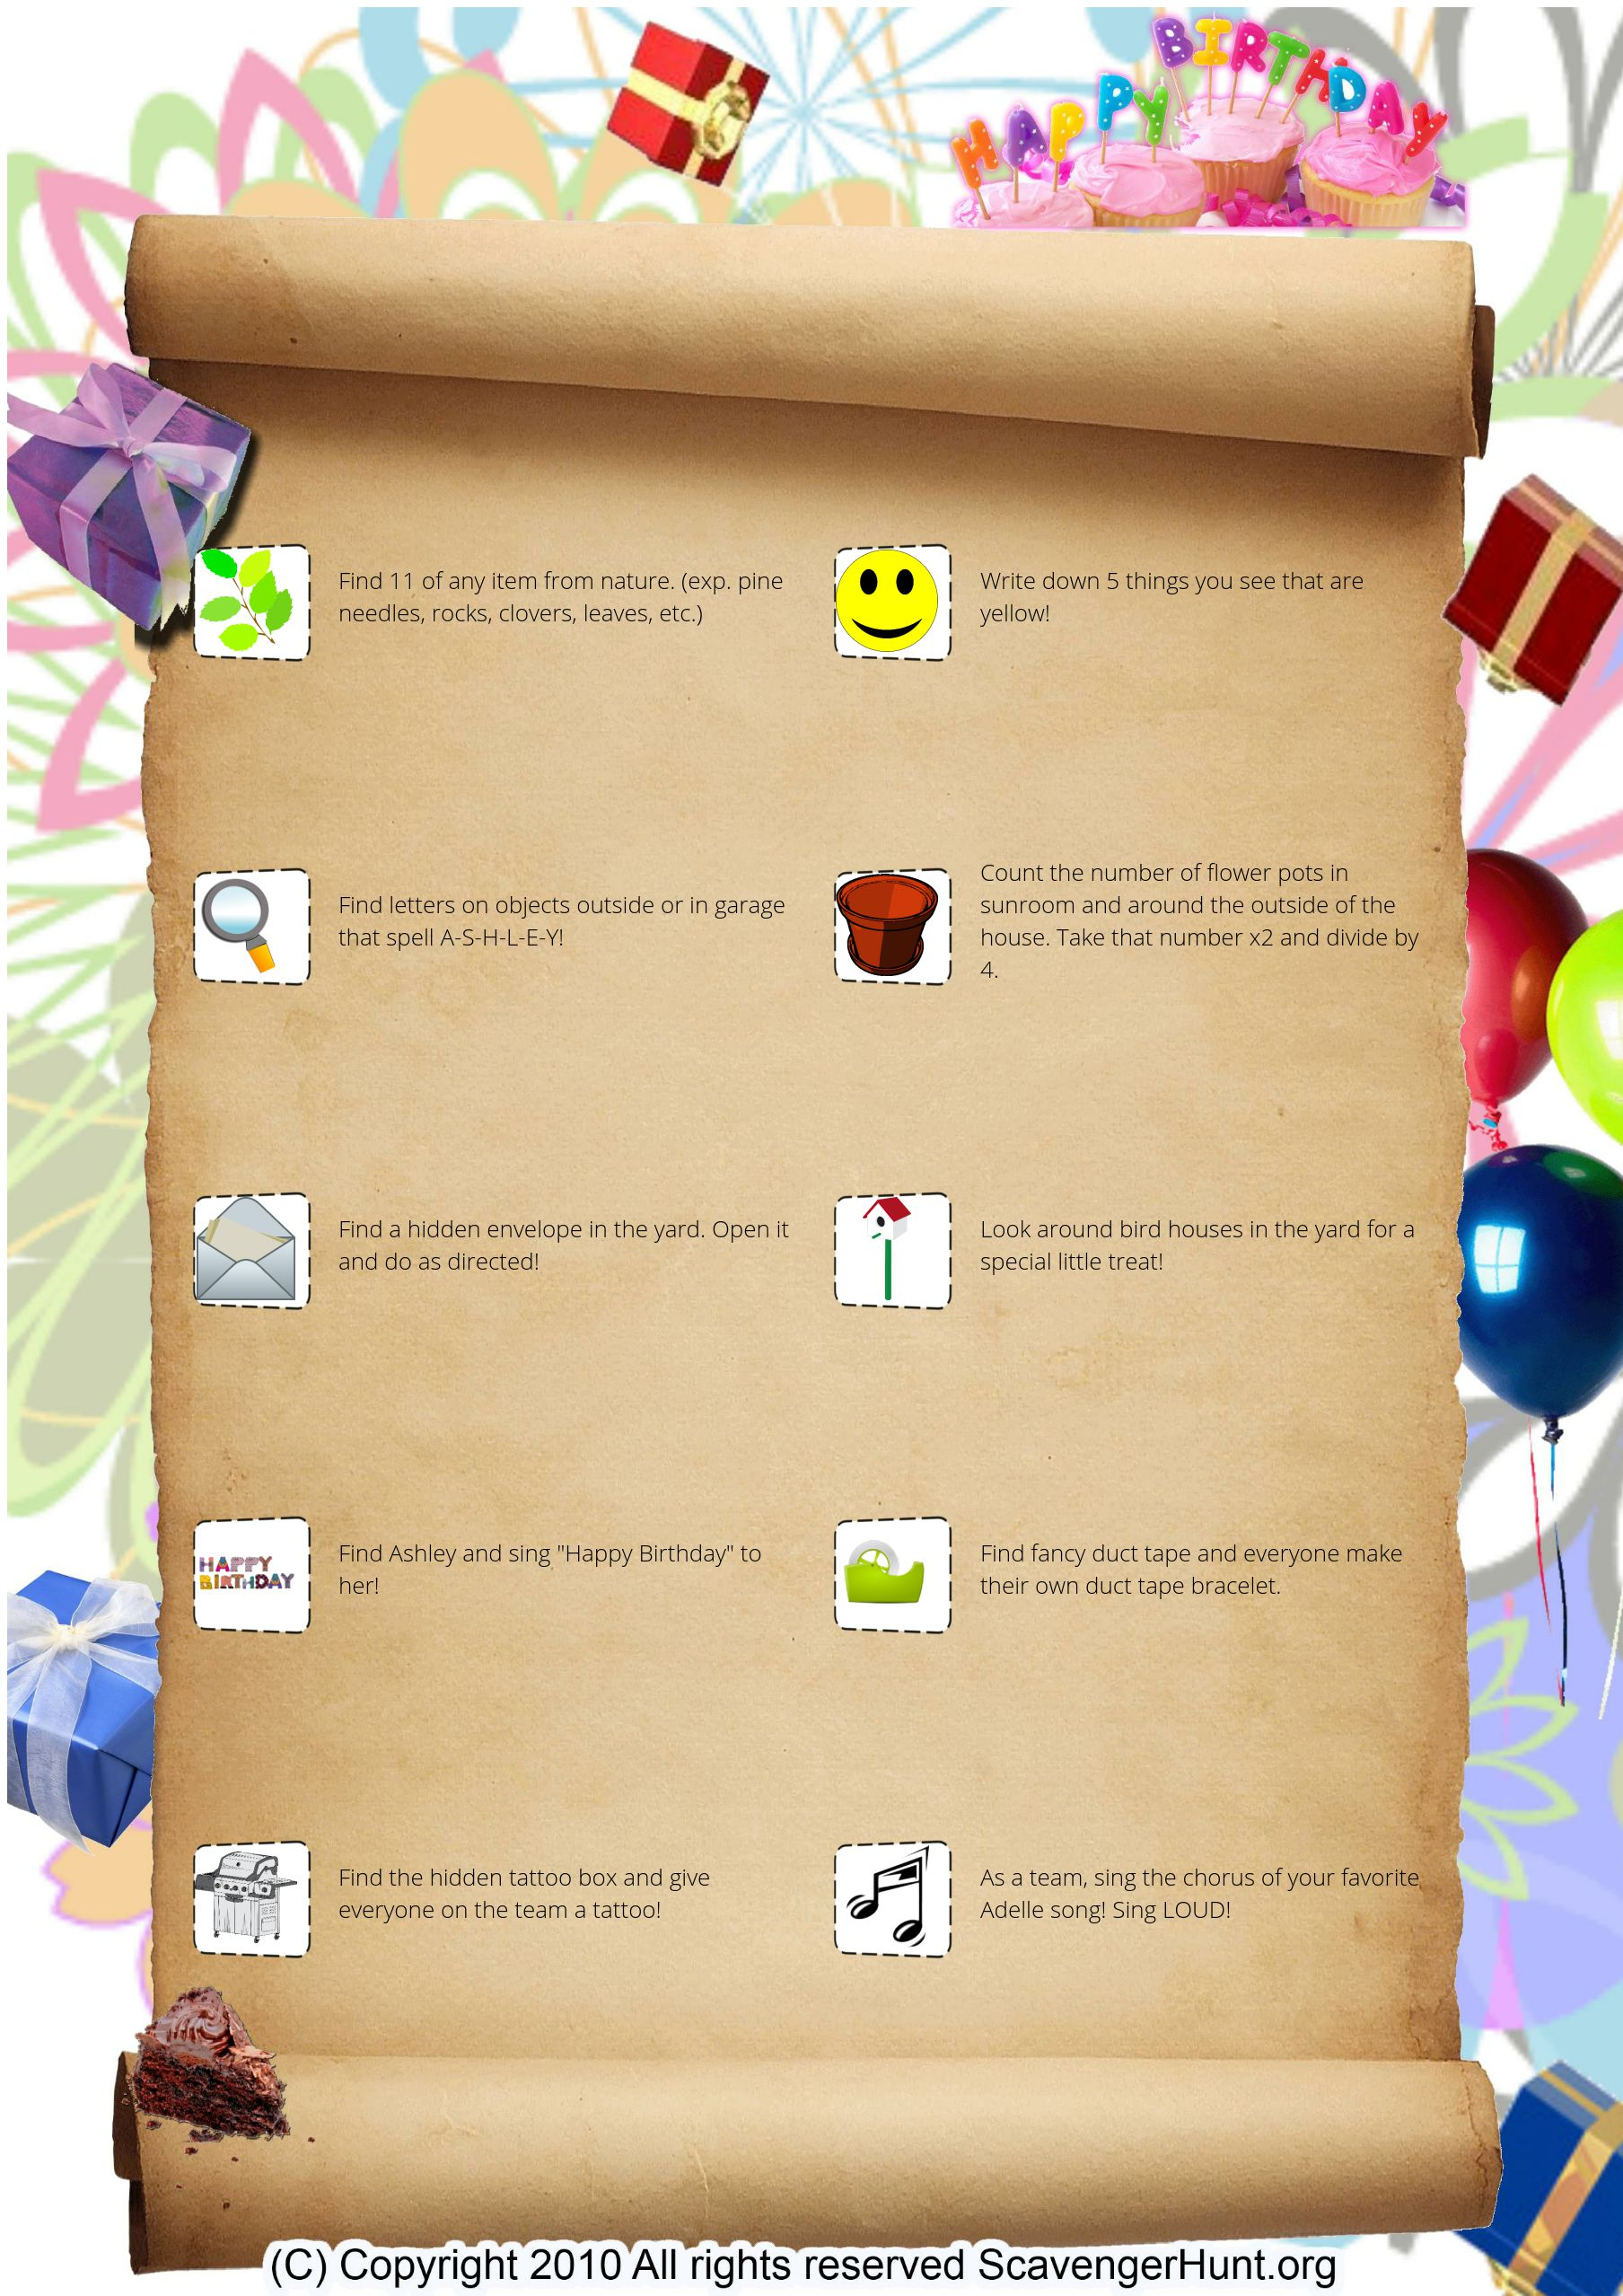 treasure hunt and scavenger hunt games collection exercises